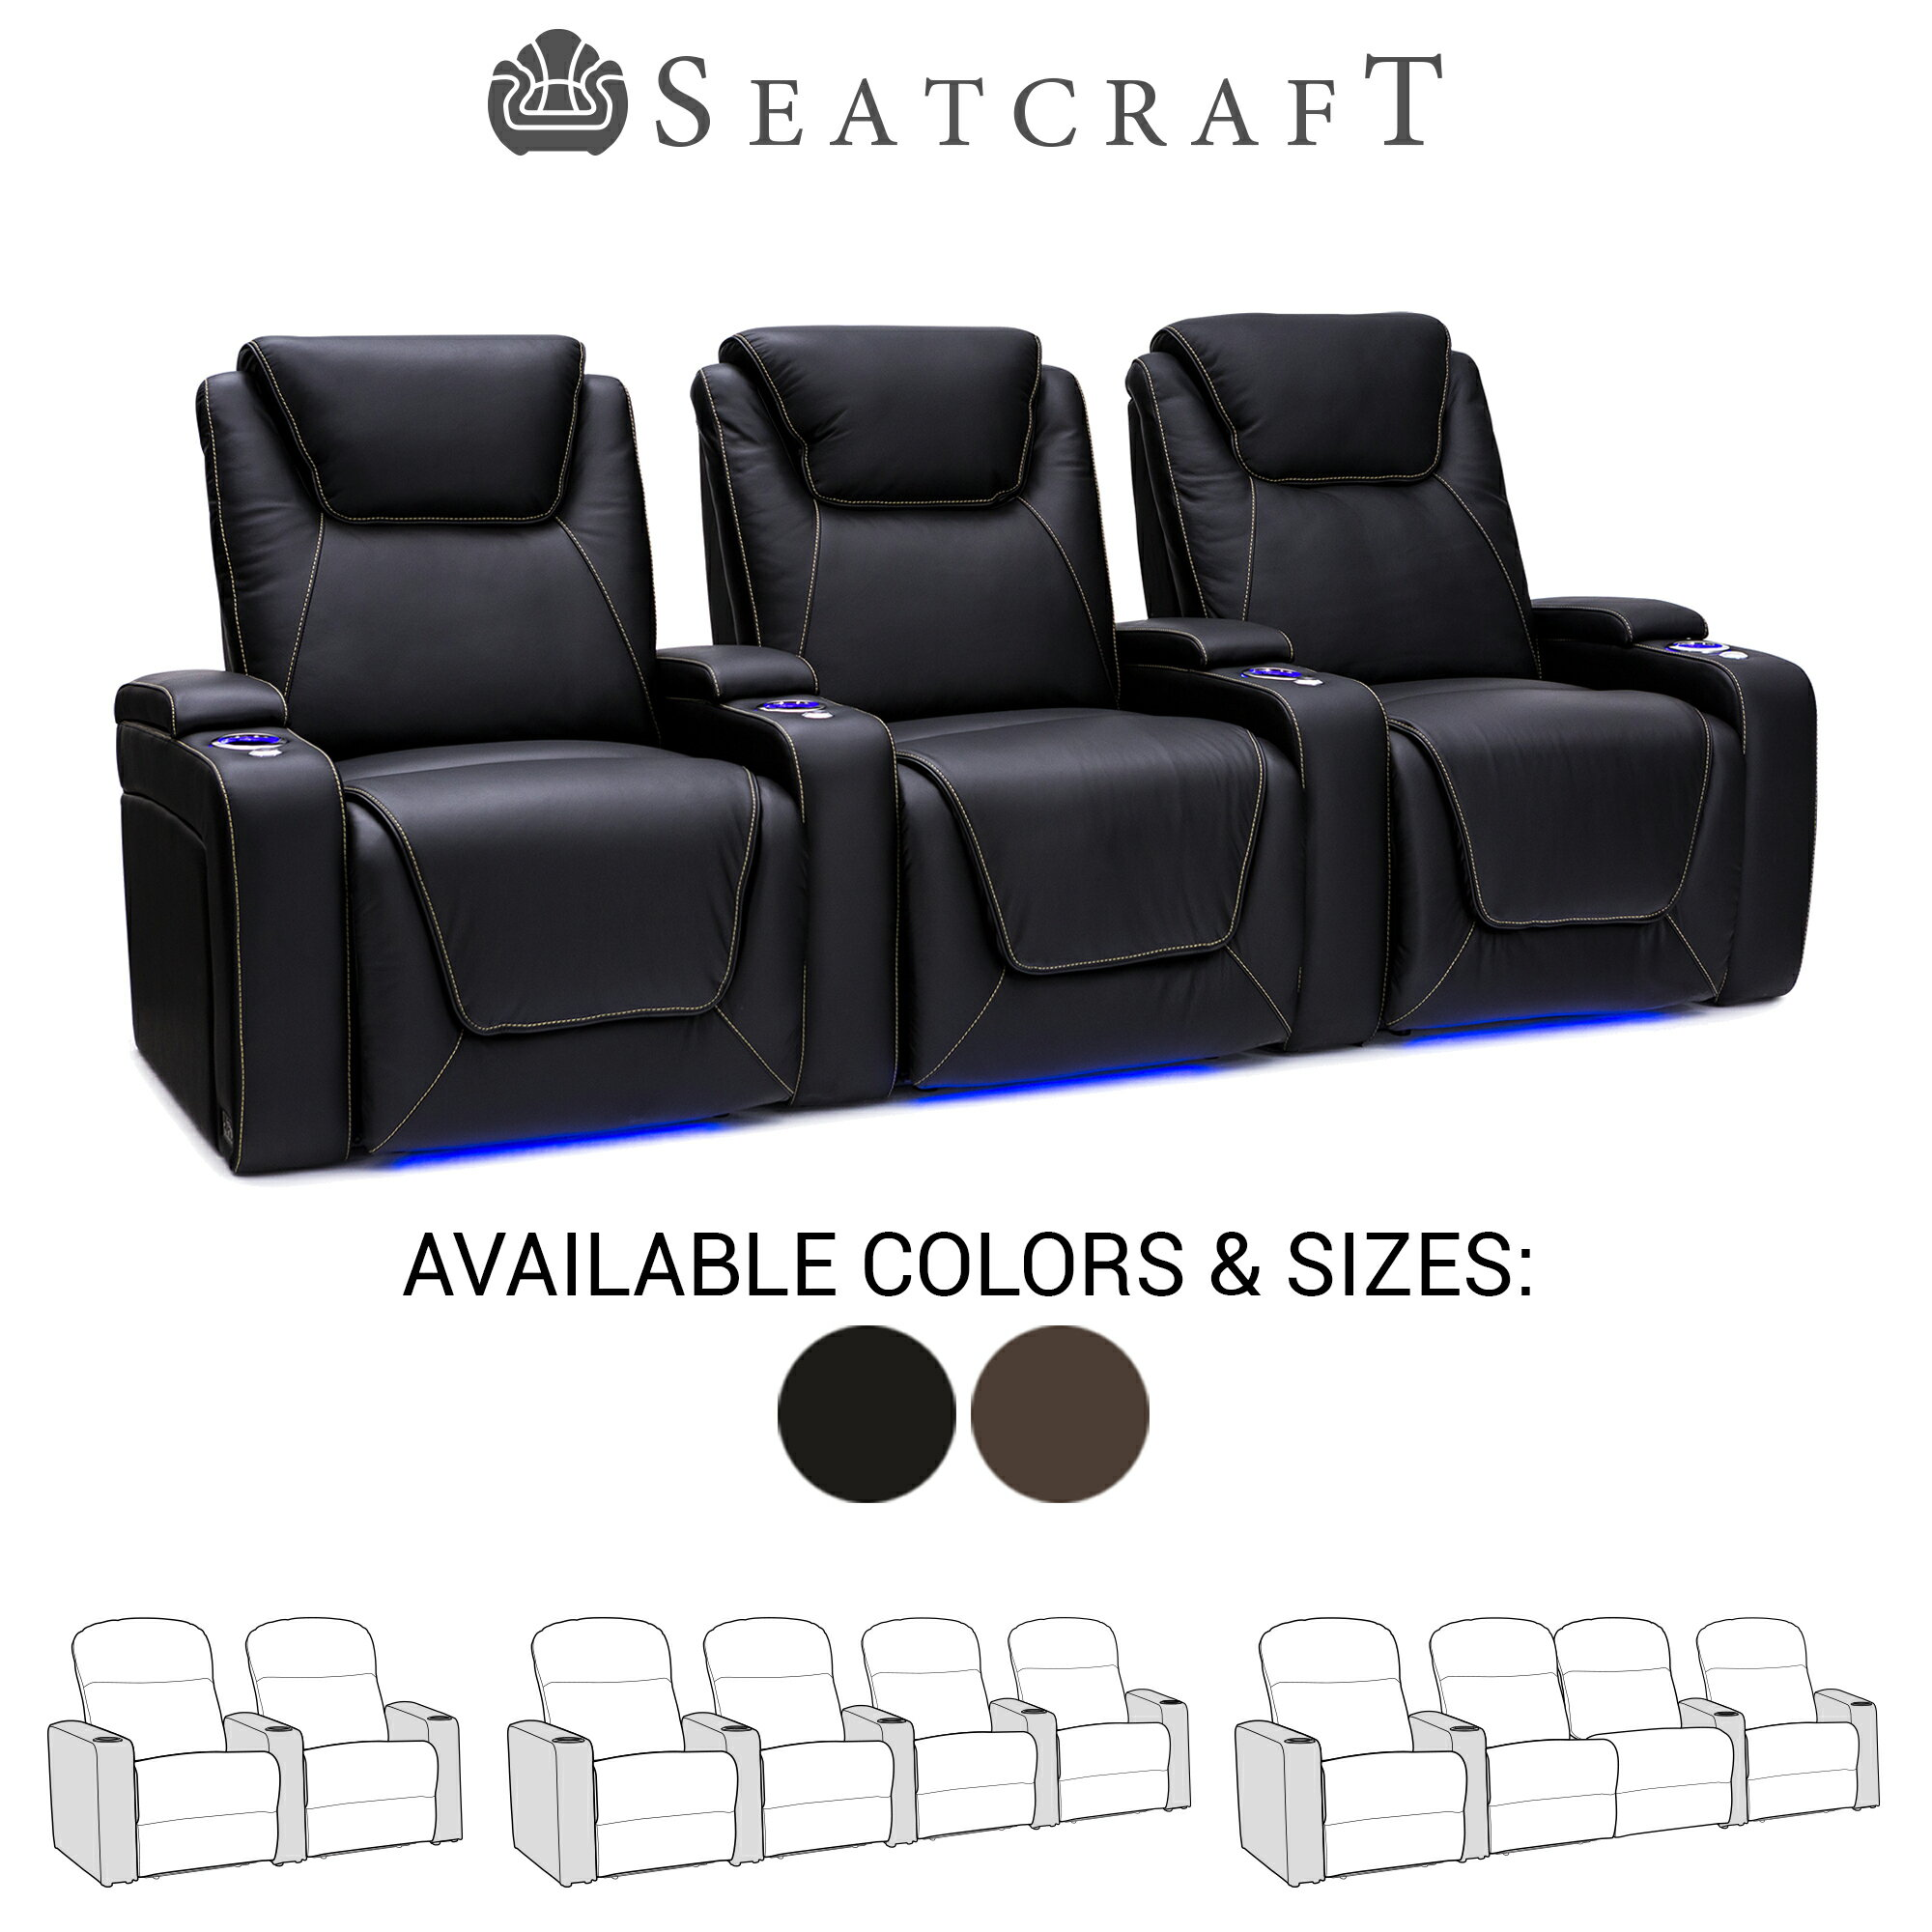 Fantastic Seatcraft Pantheon Big Tall 400 Lbs Capacity Home Theater Seating Leather Power Recline With Adjustable Powered Headrest And Lumbar In Arm Pdpeps Interior Chair Design Pdpepsorg